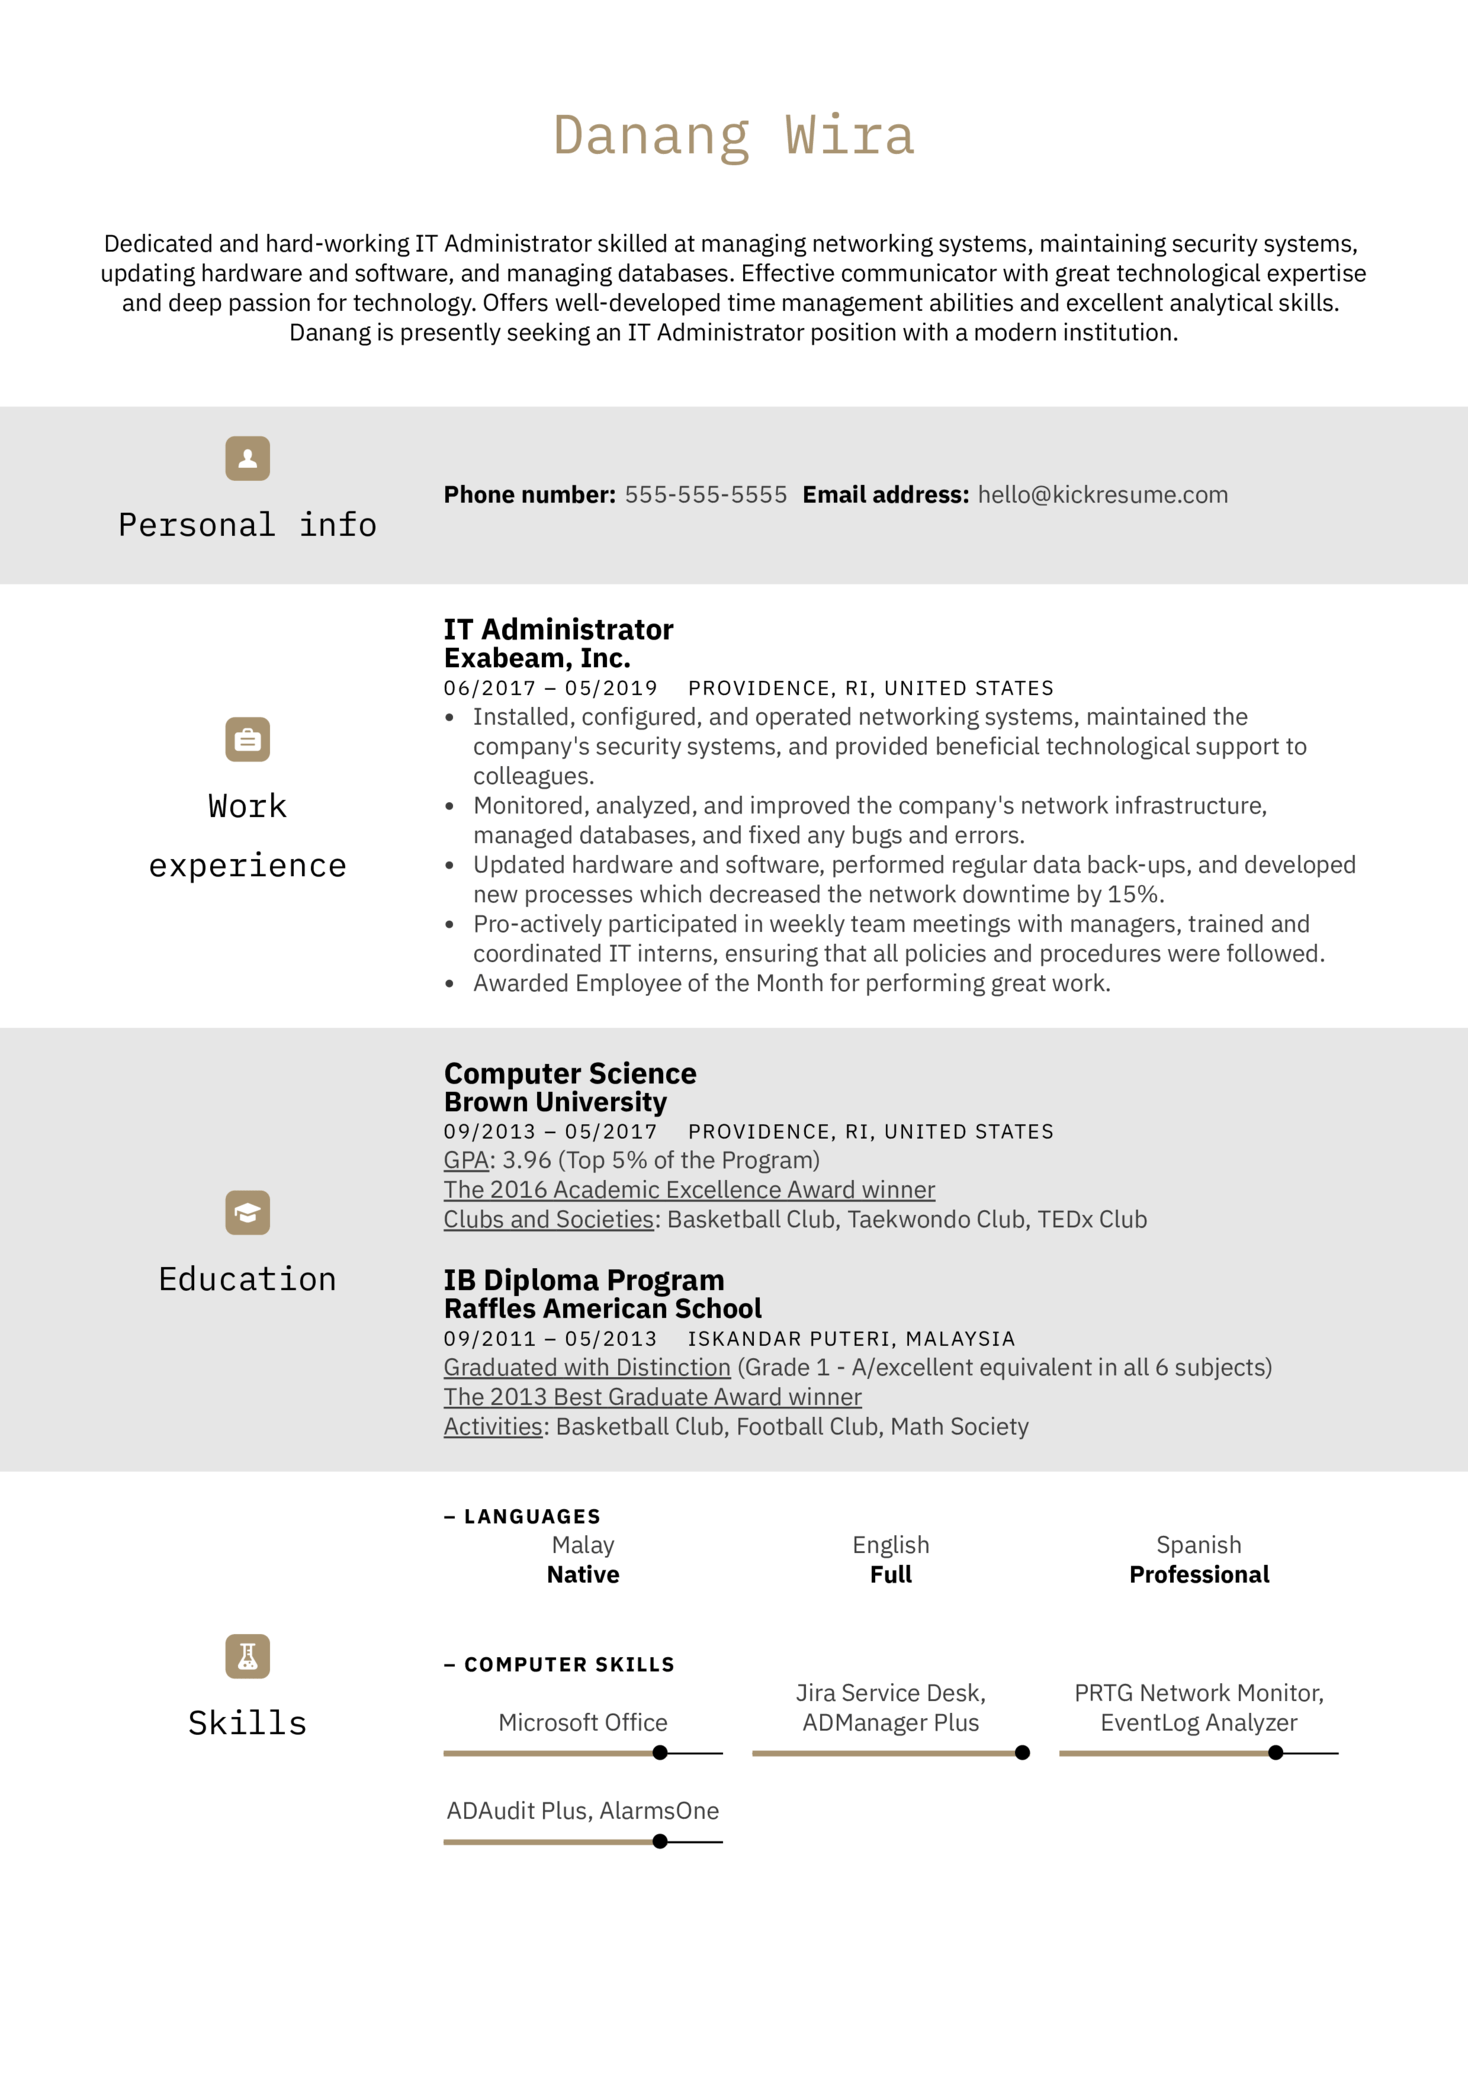 IT Administrator Resume Example (Part 1)